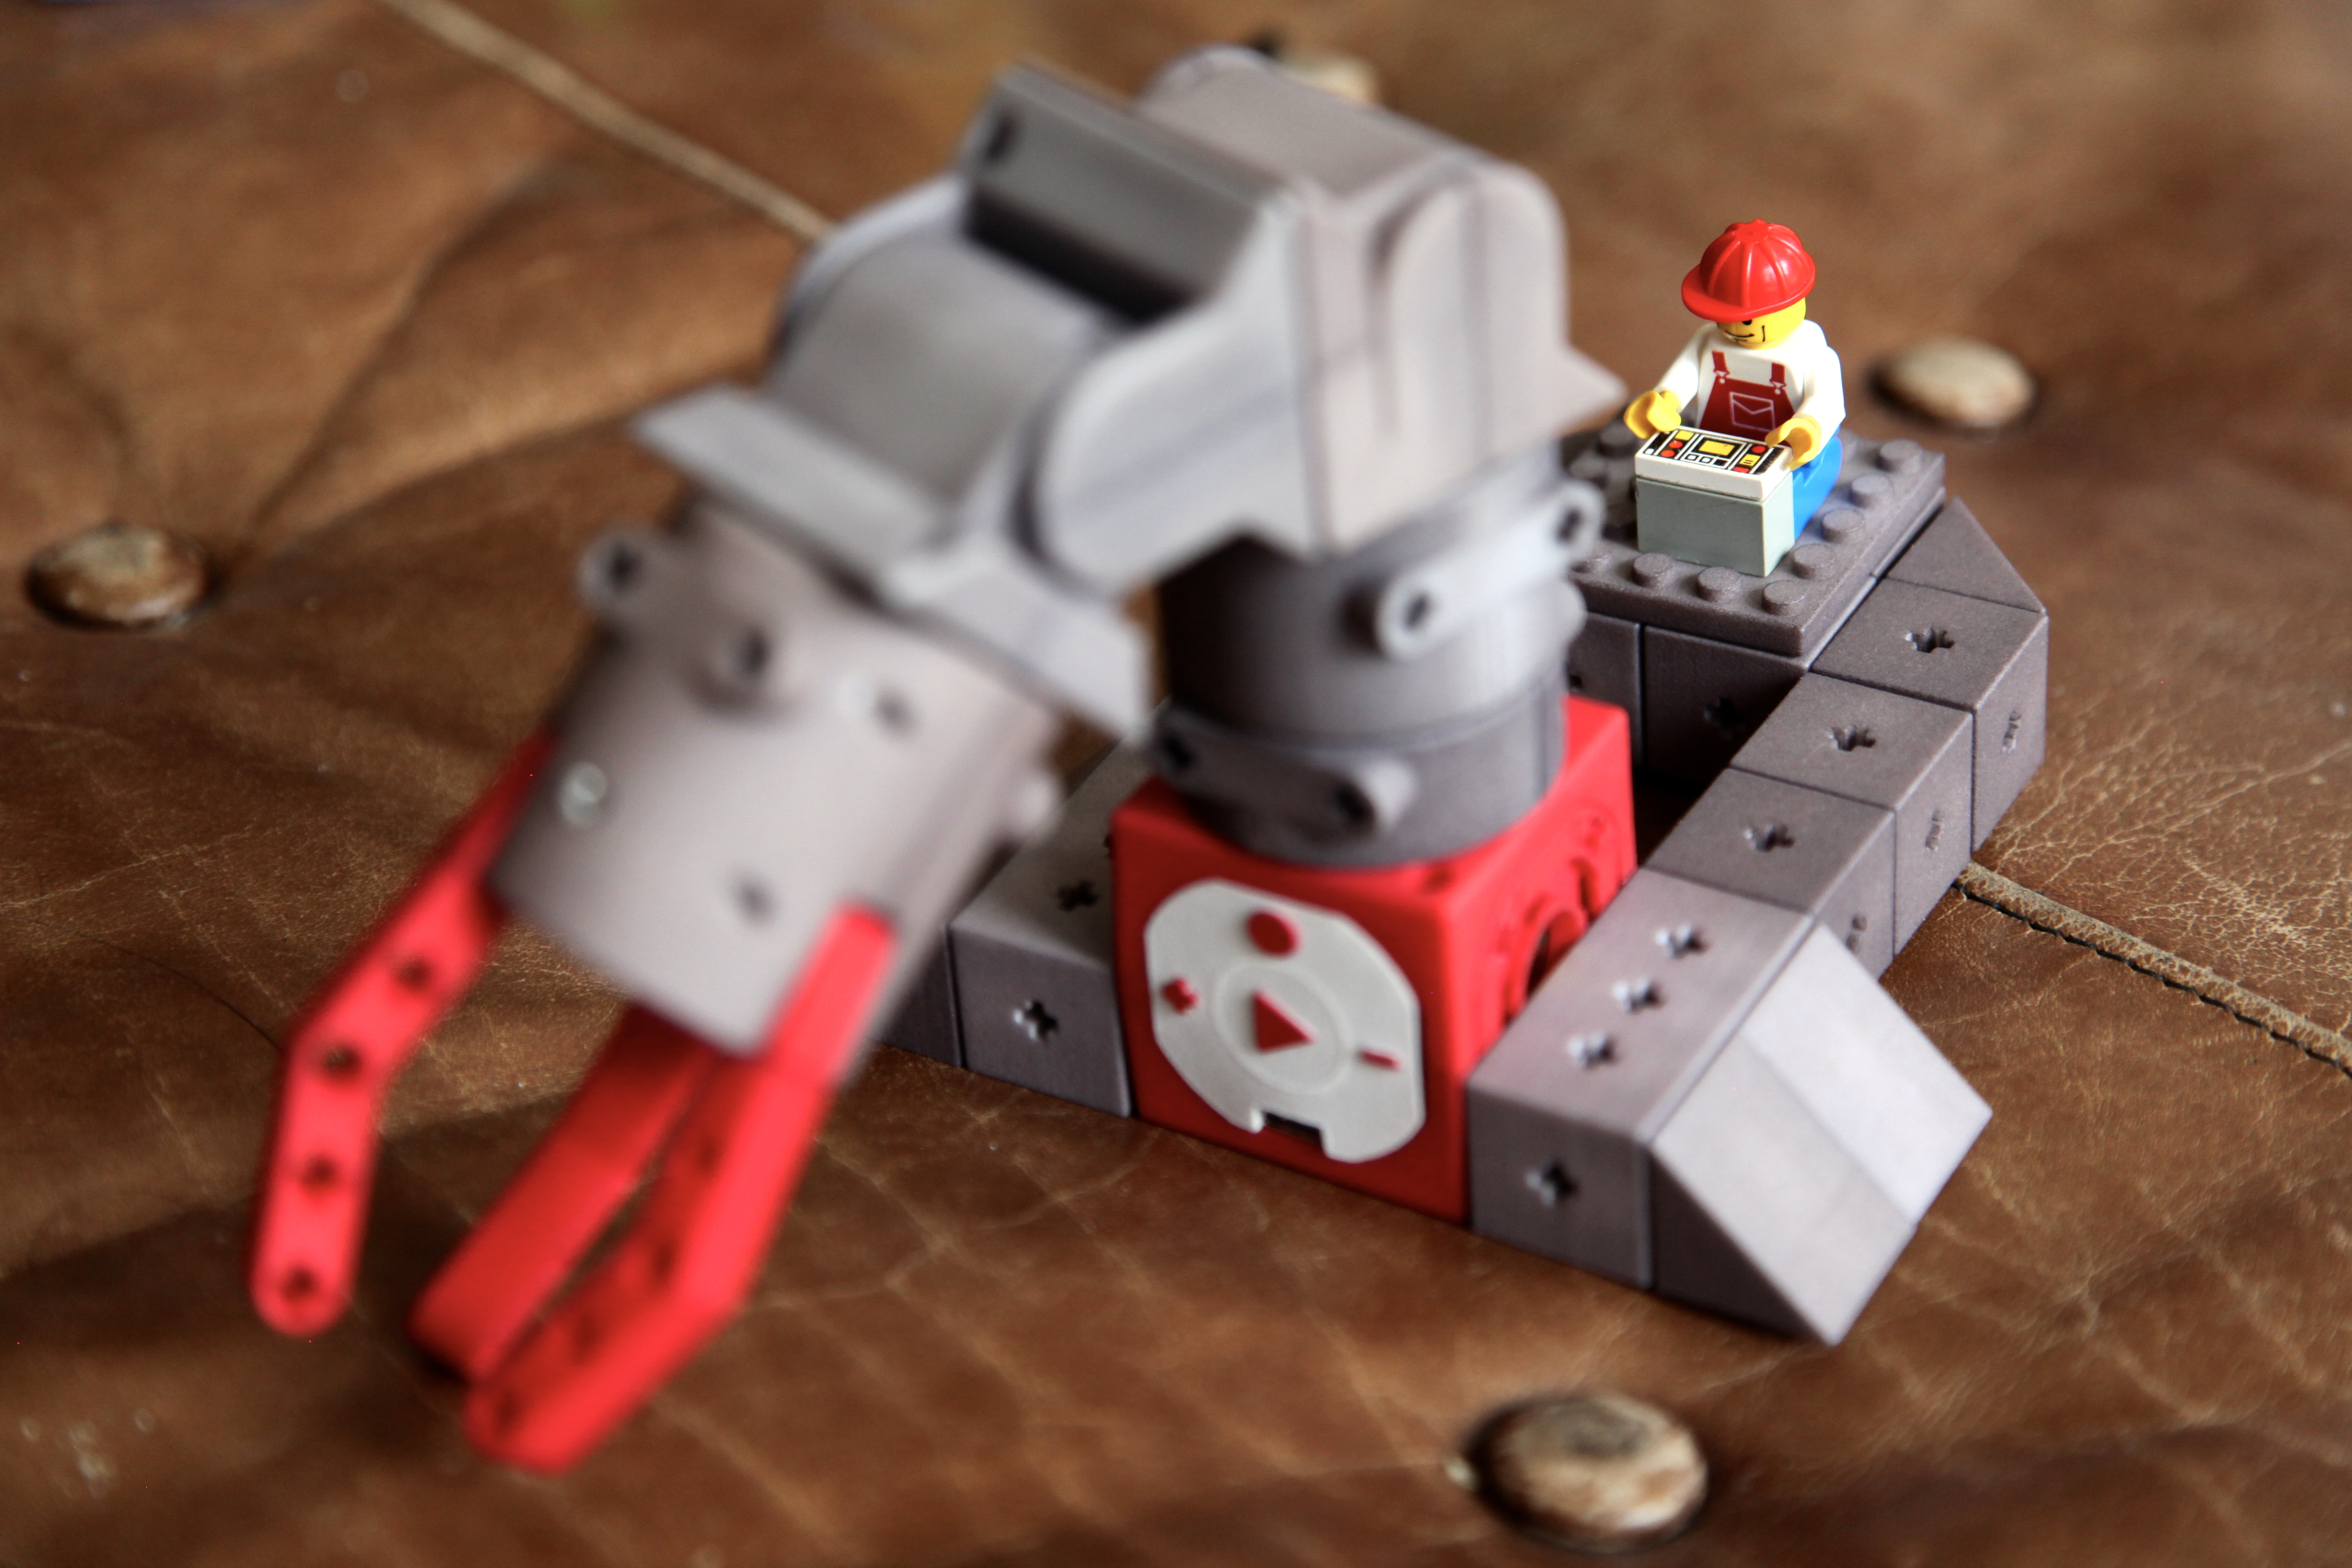 Adapter plates make TinkerBots compatible with Legos. Photo by Signe Brewster.